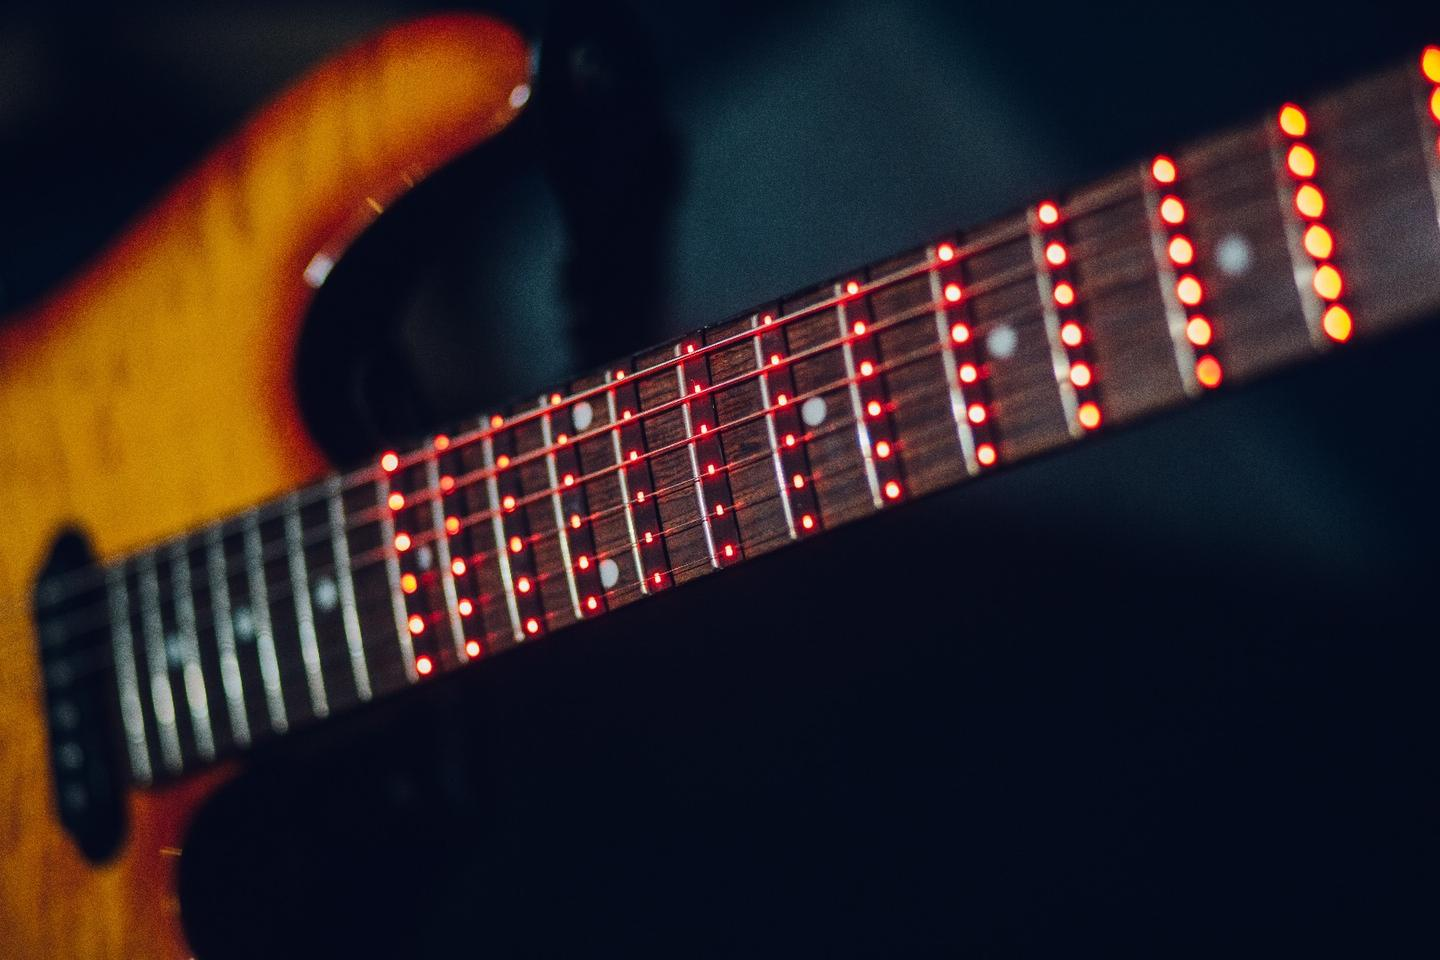 The Fret Zeppelin learning sleeve boasts 144 full spectrum LED lights